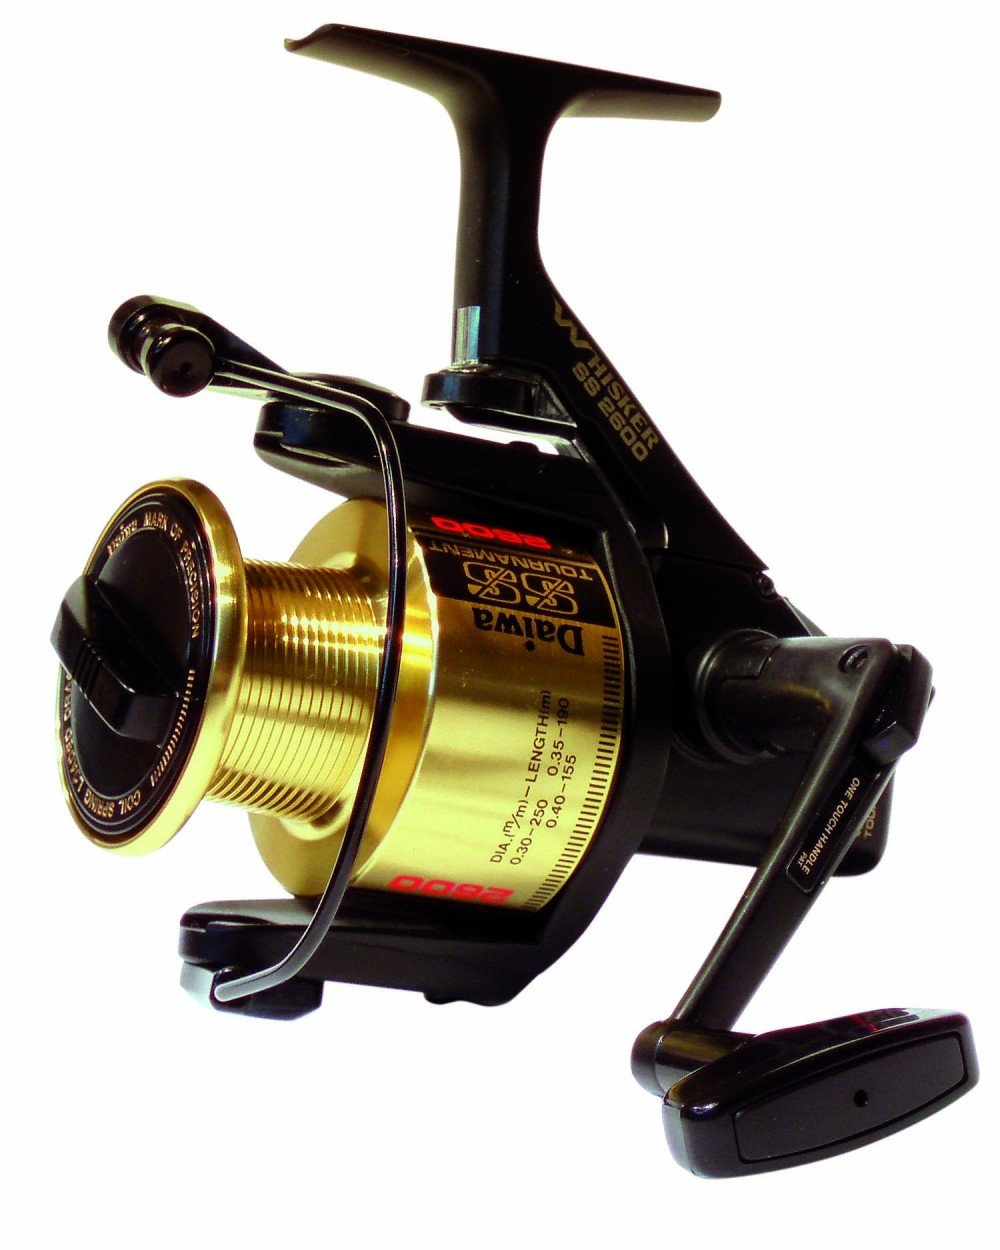 Daiwa SS Tournament 4.6:1 Left/Right Hand Long Cast Spinning Fishing Reel - Whisker SS2600 by Daiwa